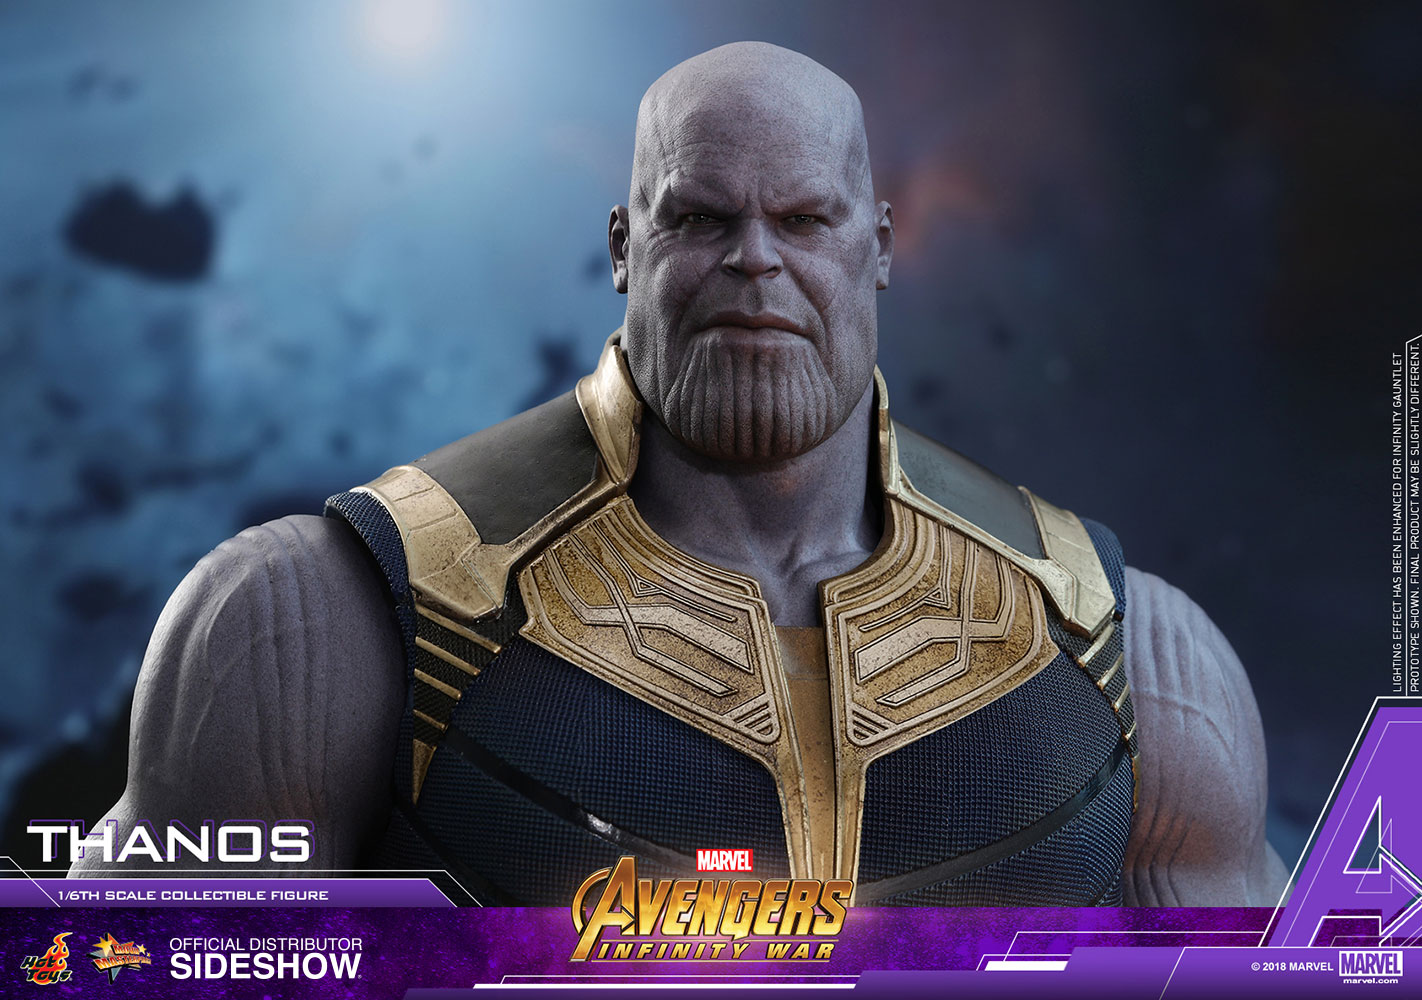 marvel-avengers-infinity-war-thanos-sixth-scale-figure-hot-toys-903429-23